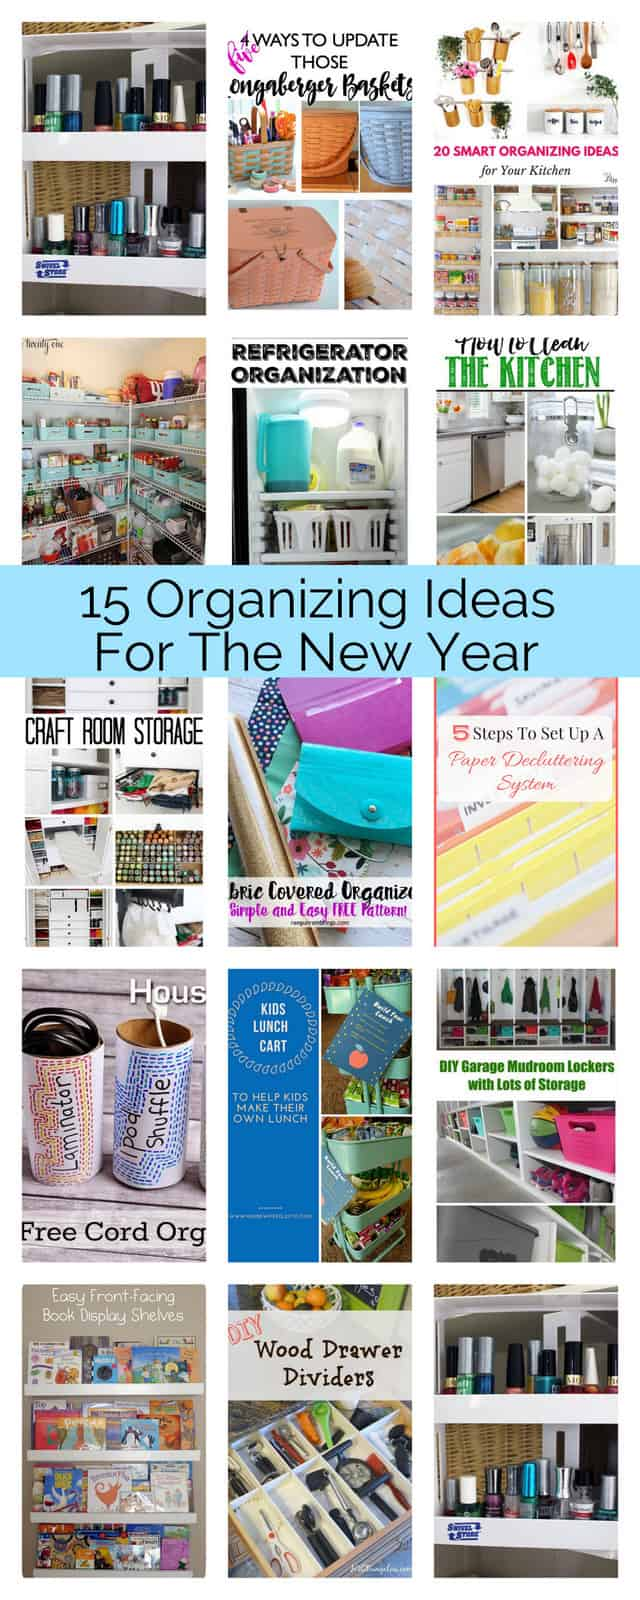 15 Organizing Ideas for the New Year - Housewife Eclectic